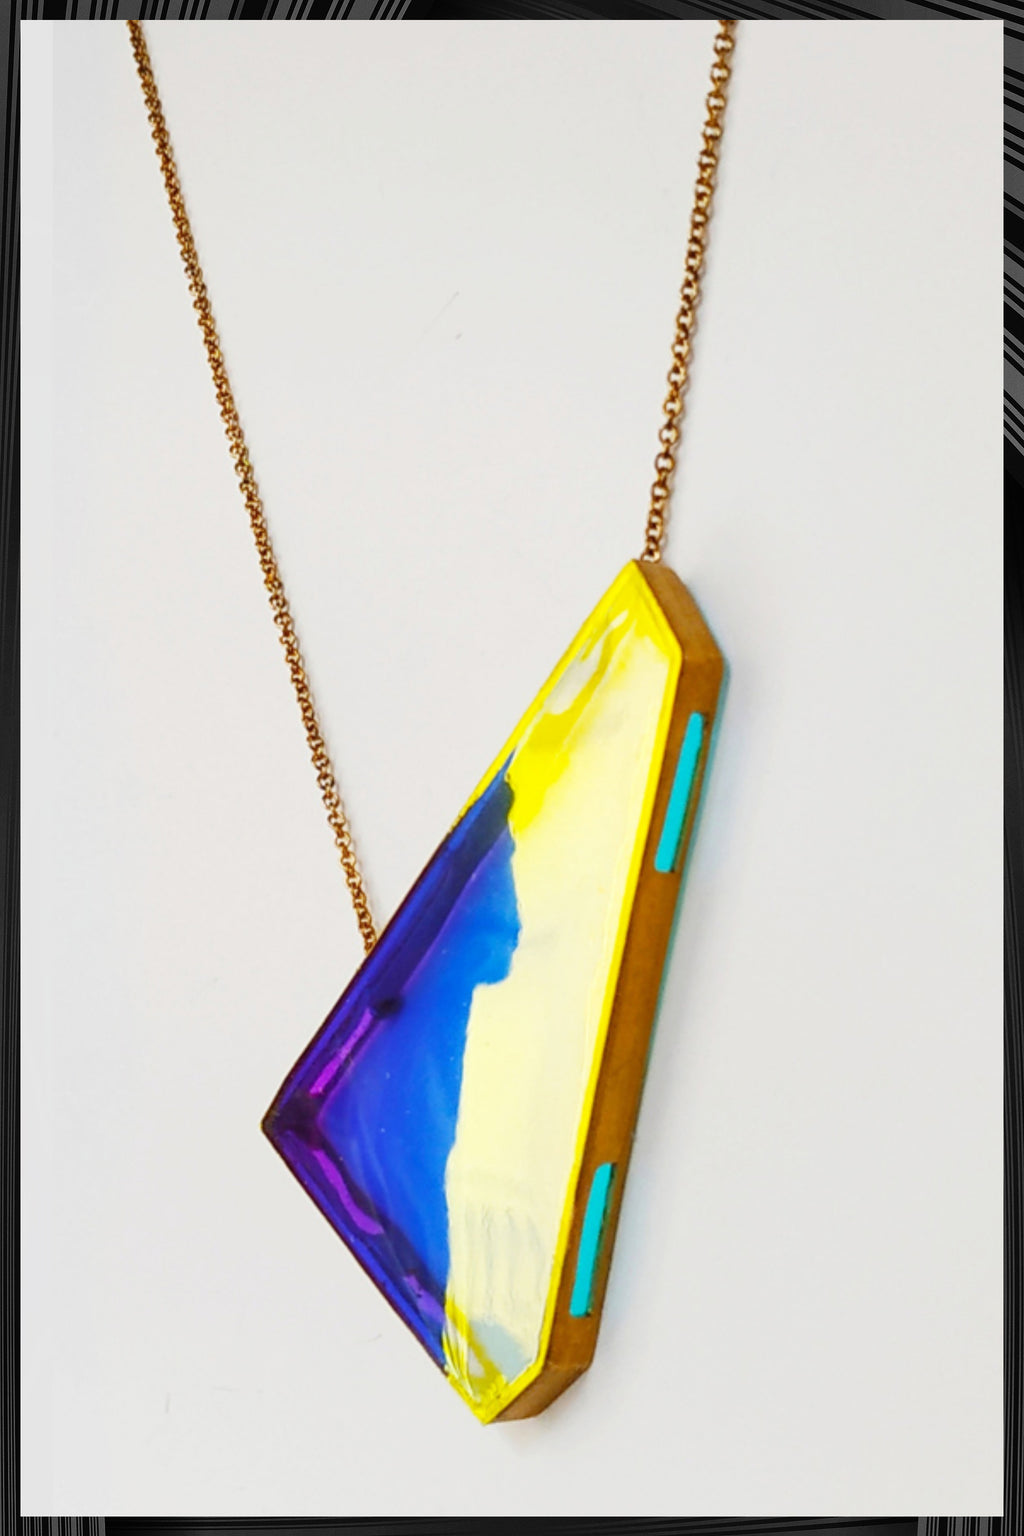 Art School Pendant | Free Delivery - 2-3 Weeks Shipping